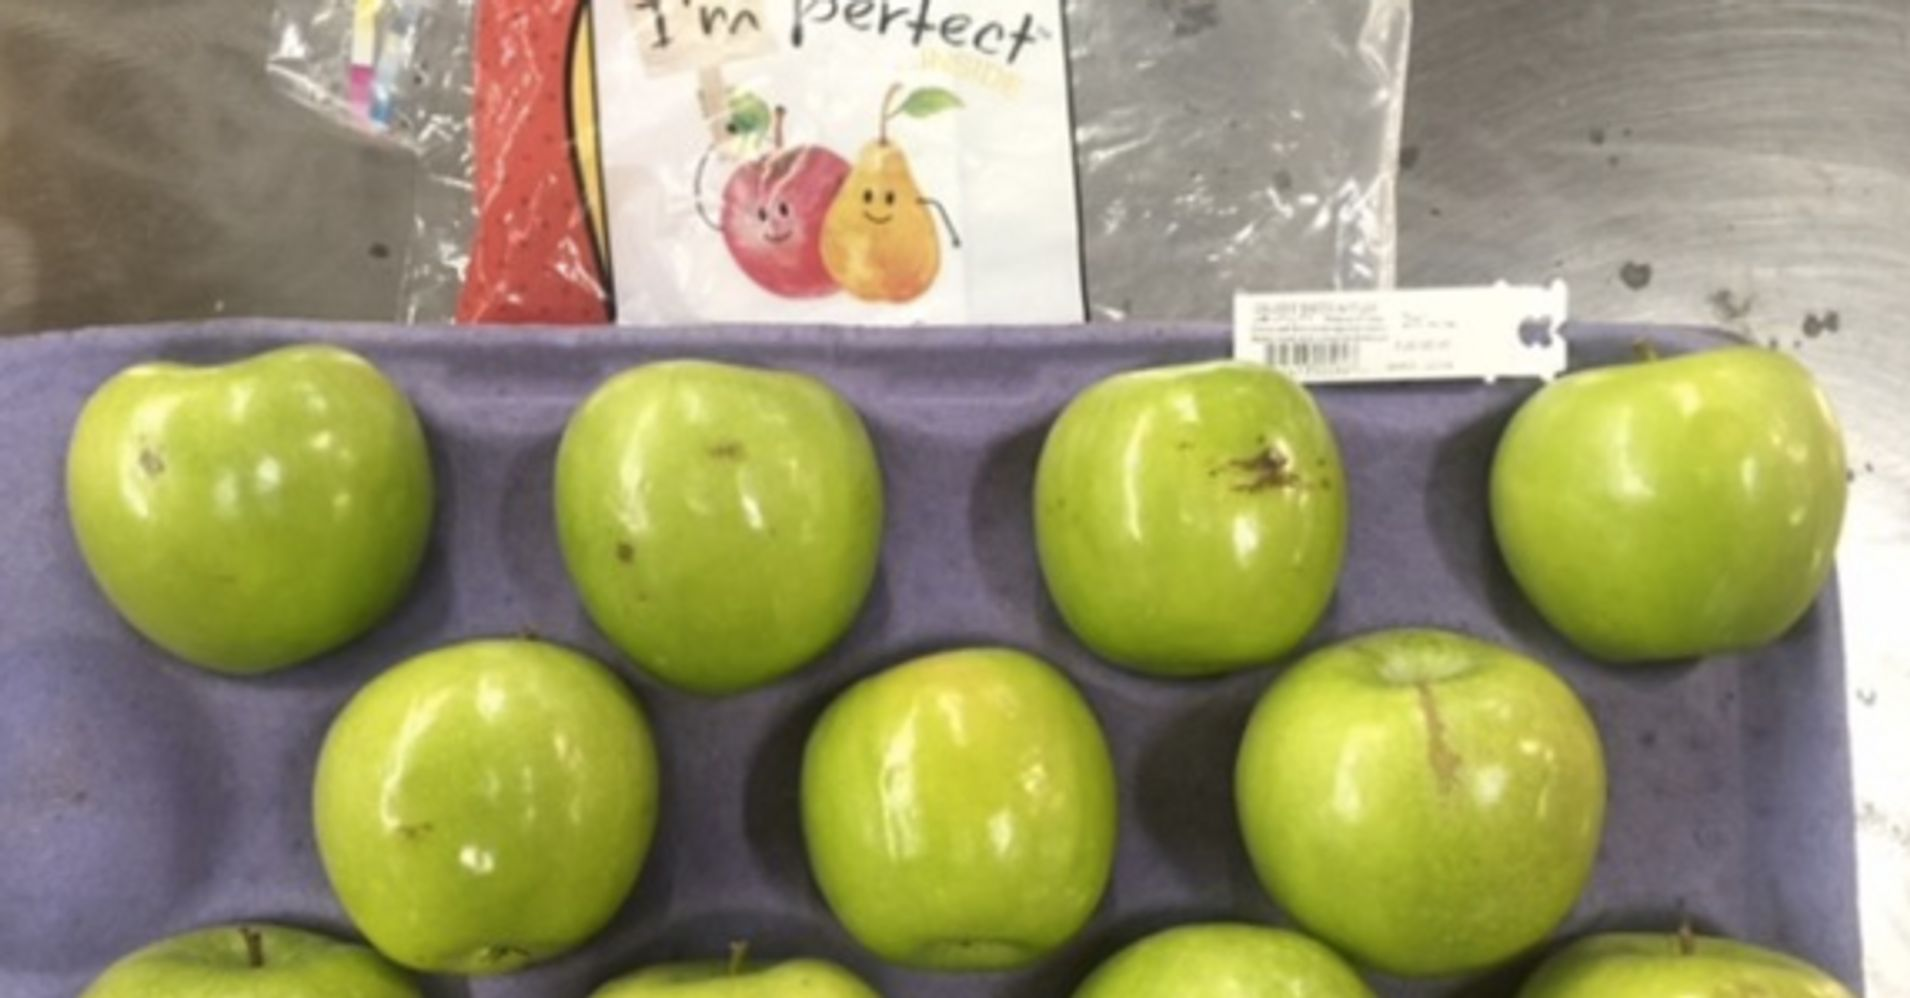 6bab66606 Walmart Unveils New Lines Of Ugly Apples And Potatoes | HuffPost